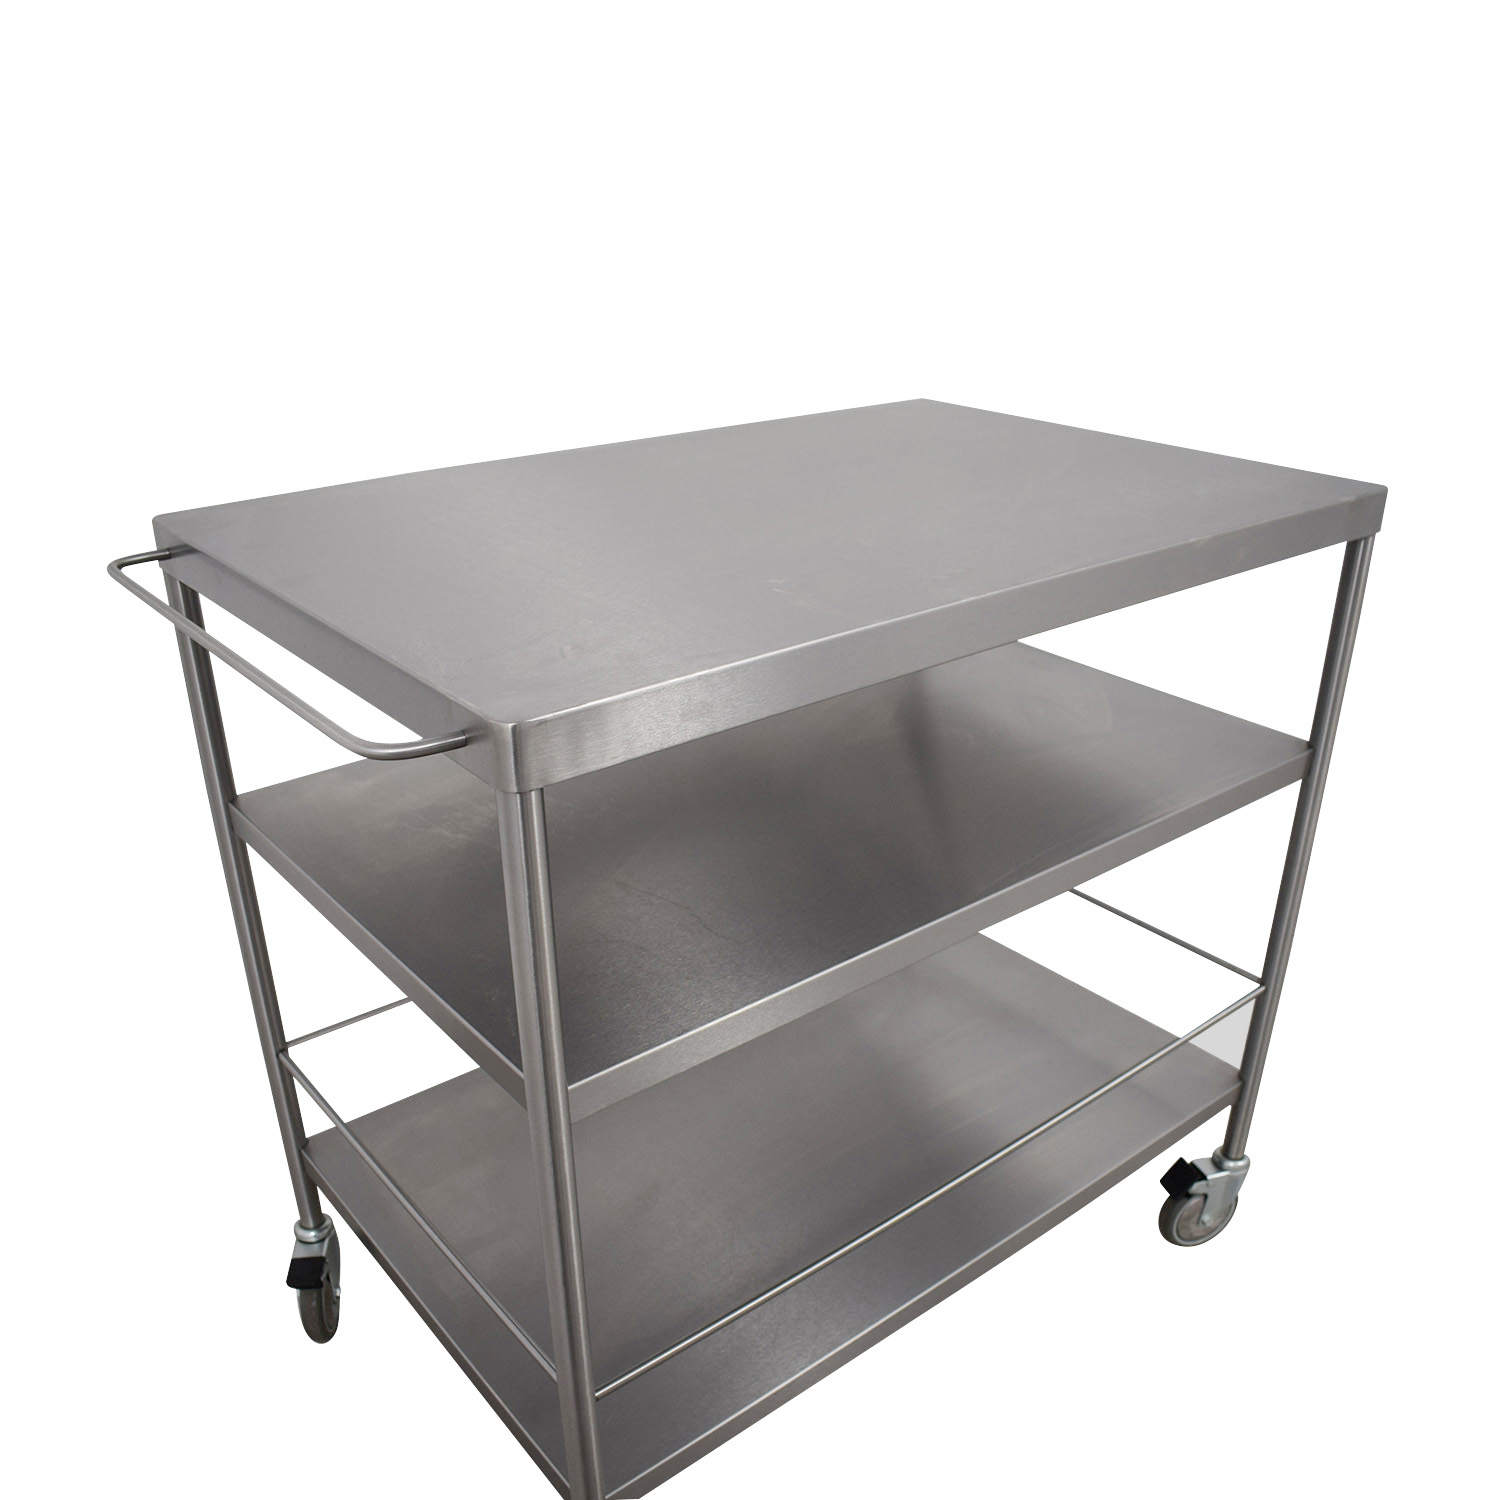 59 off ikea ikea stainless steel kitchen cart tables. Black Bedroom Furniture Sets. Home Design Ideas